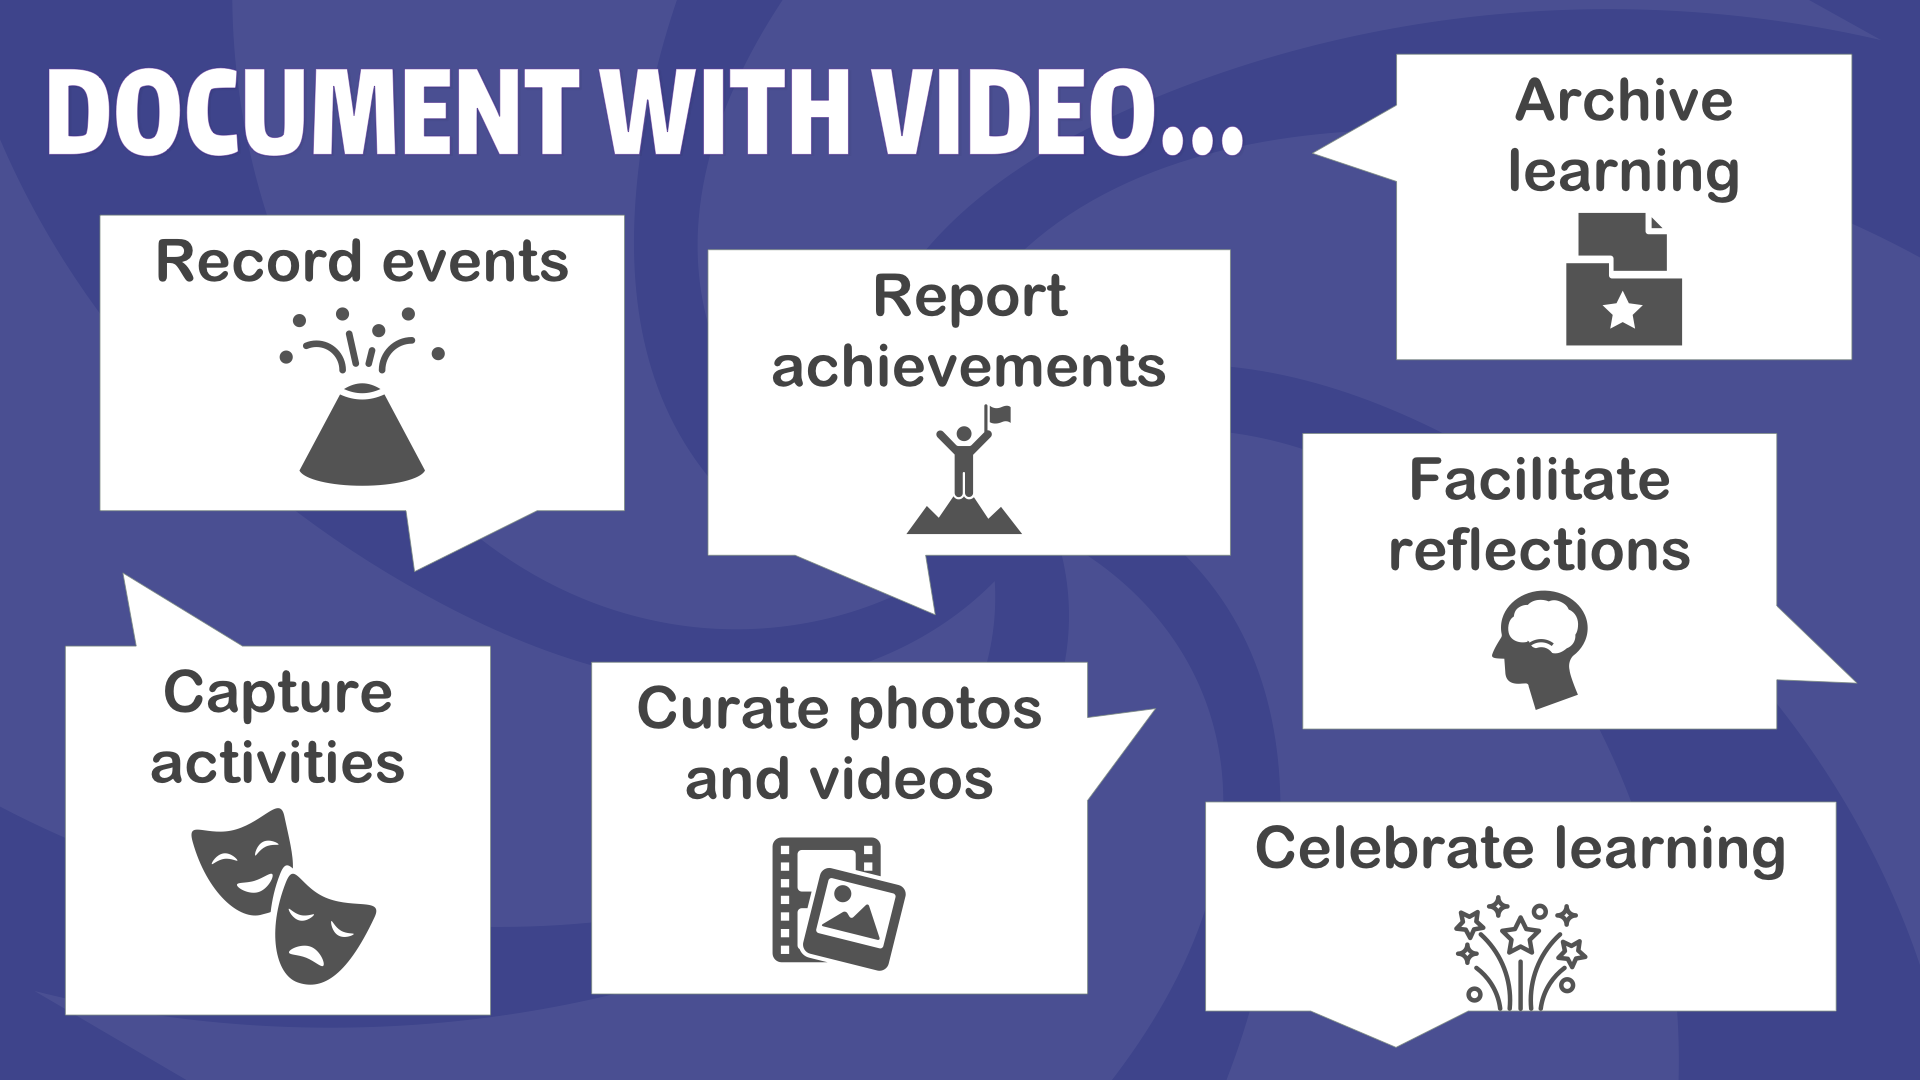 Document with video… Record Events, report achievements, archive learning, facilitate reflections, capture activities, curate photos and videos, celebrate learning